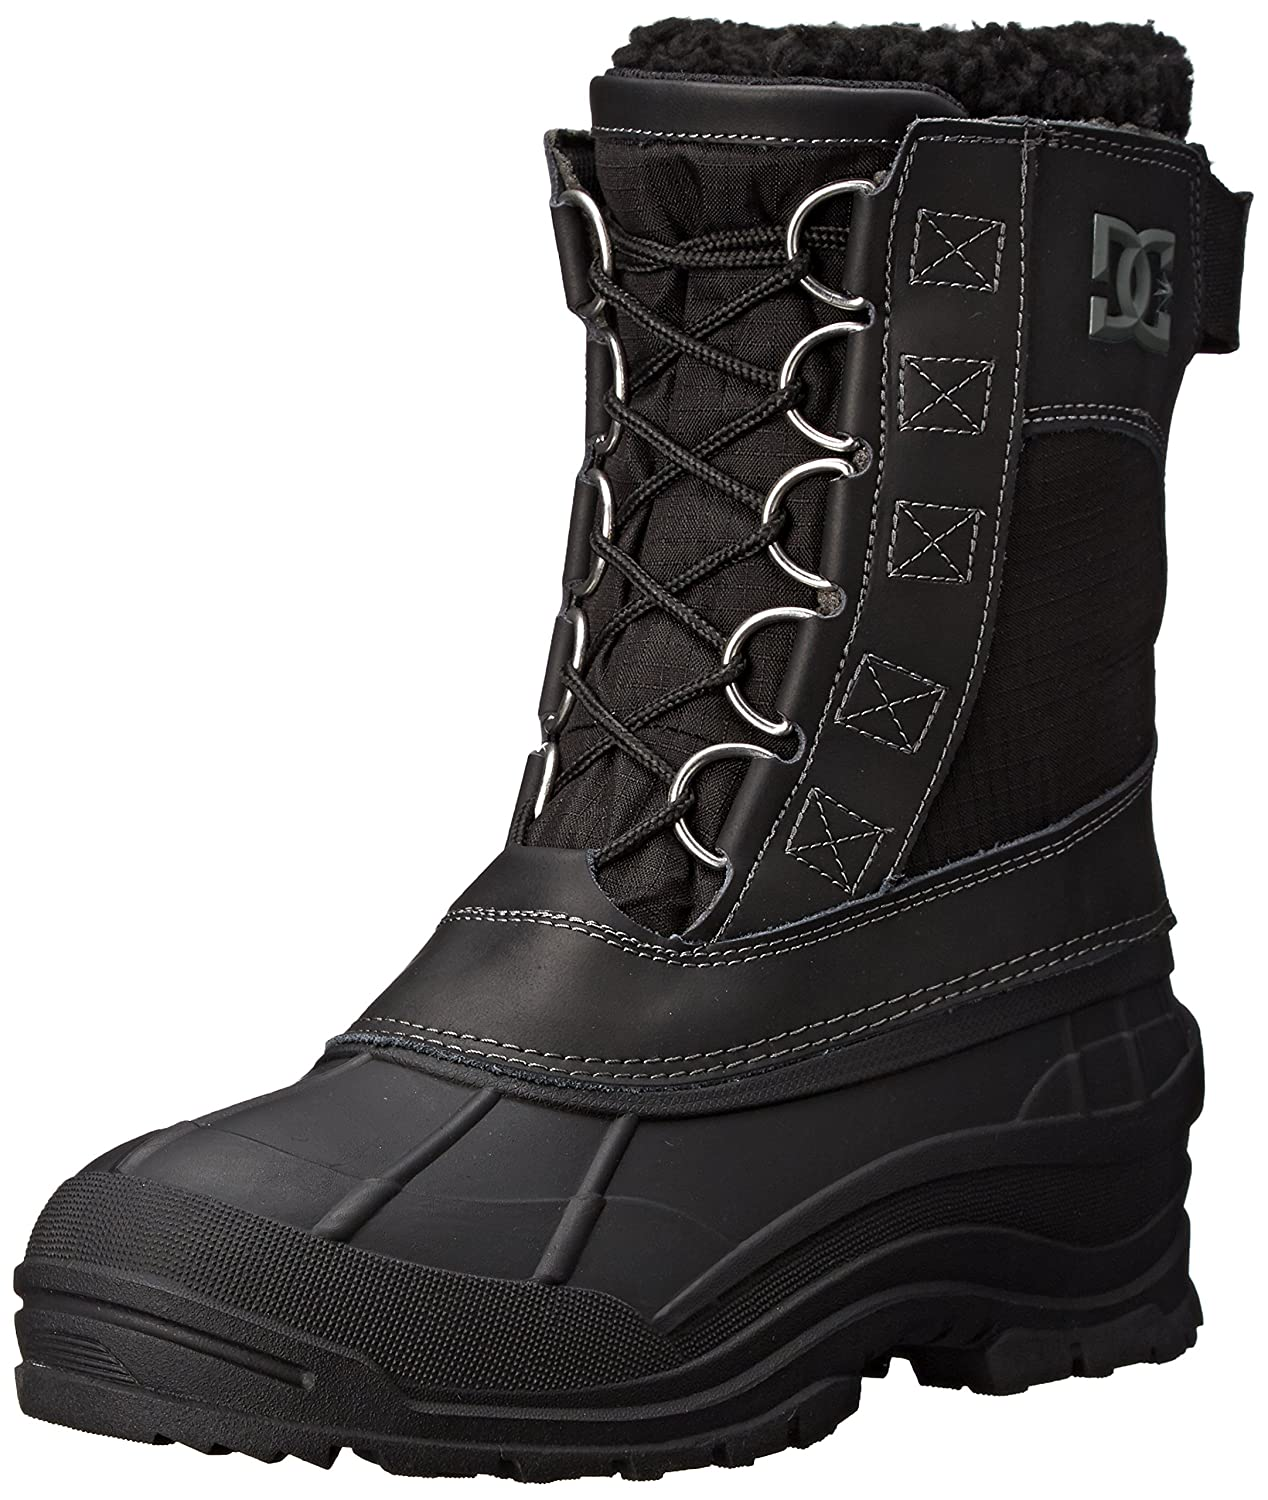 DC Men's Rodel Waterproof Snow Boot